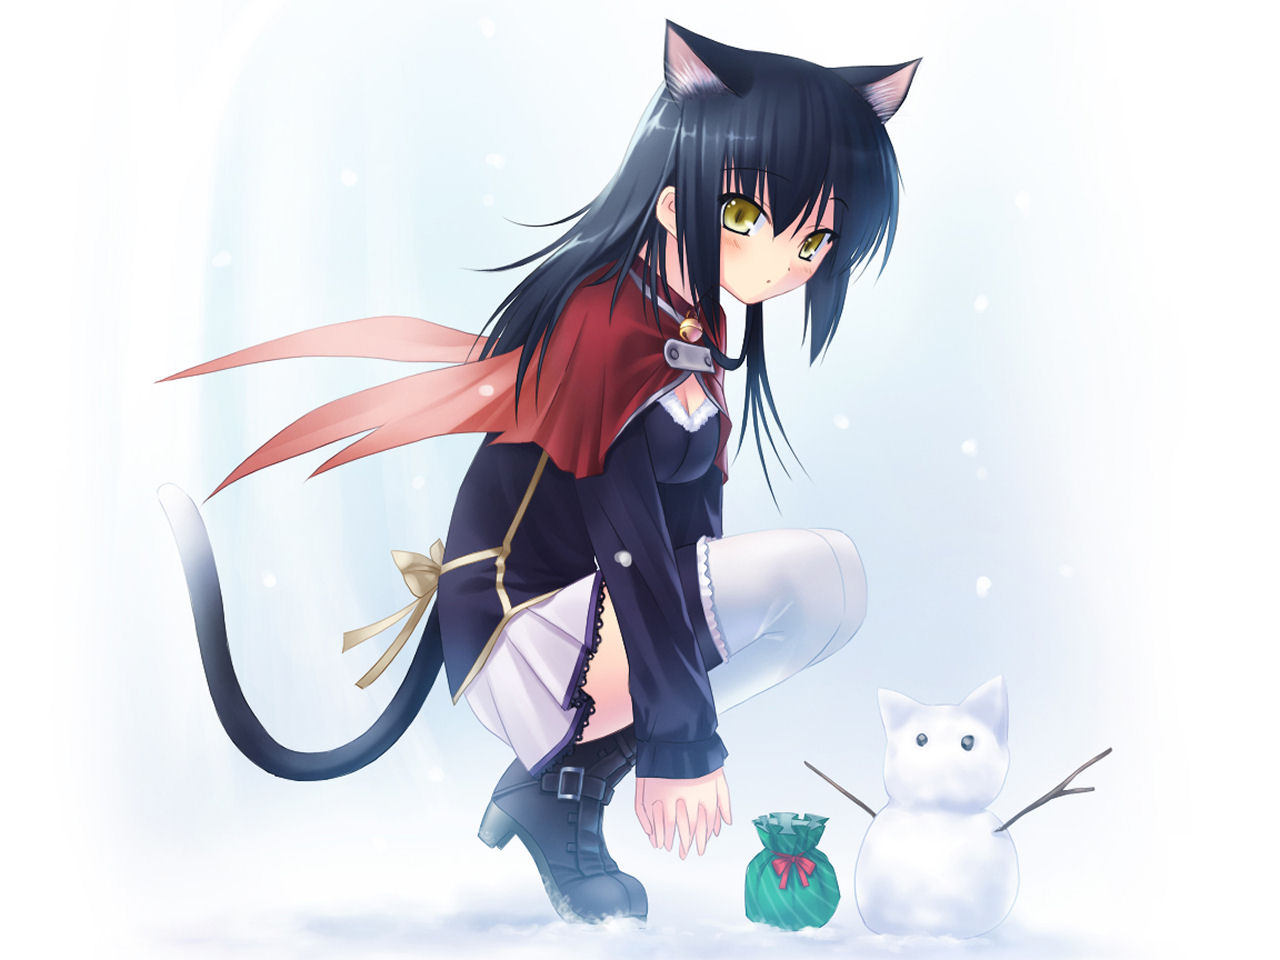 animal_ears bell black_hair blush boots bow breasts catgirl cleavage snow snowman tail thighhighs yellow_eyes